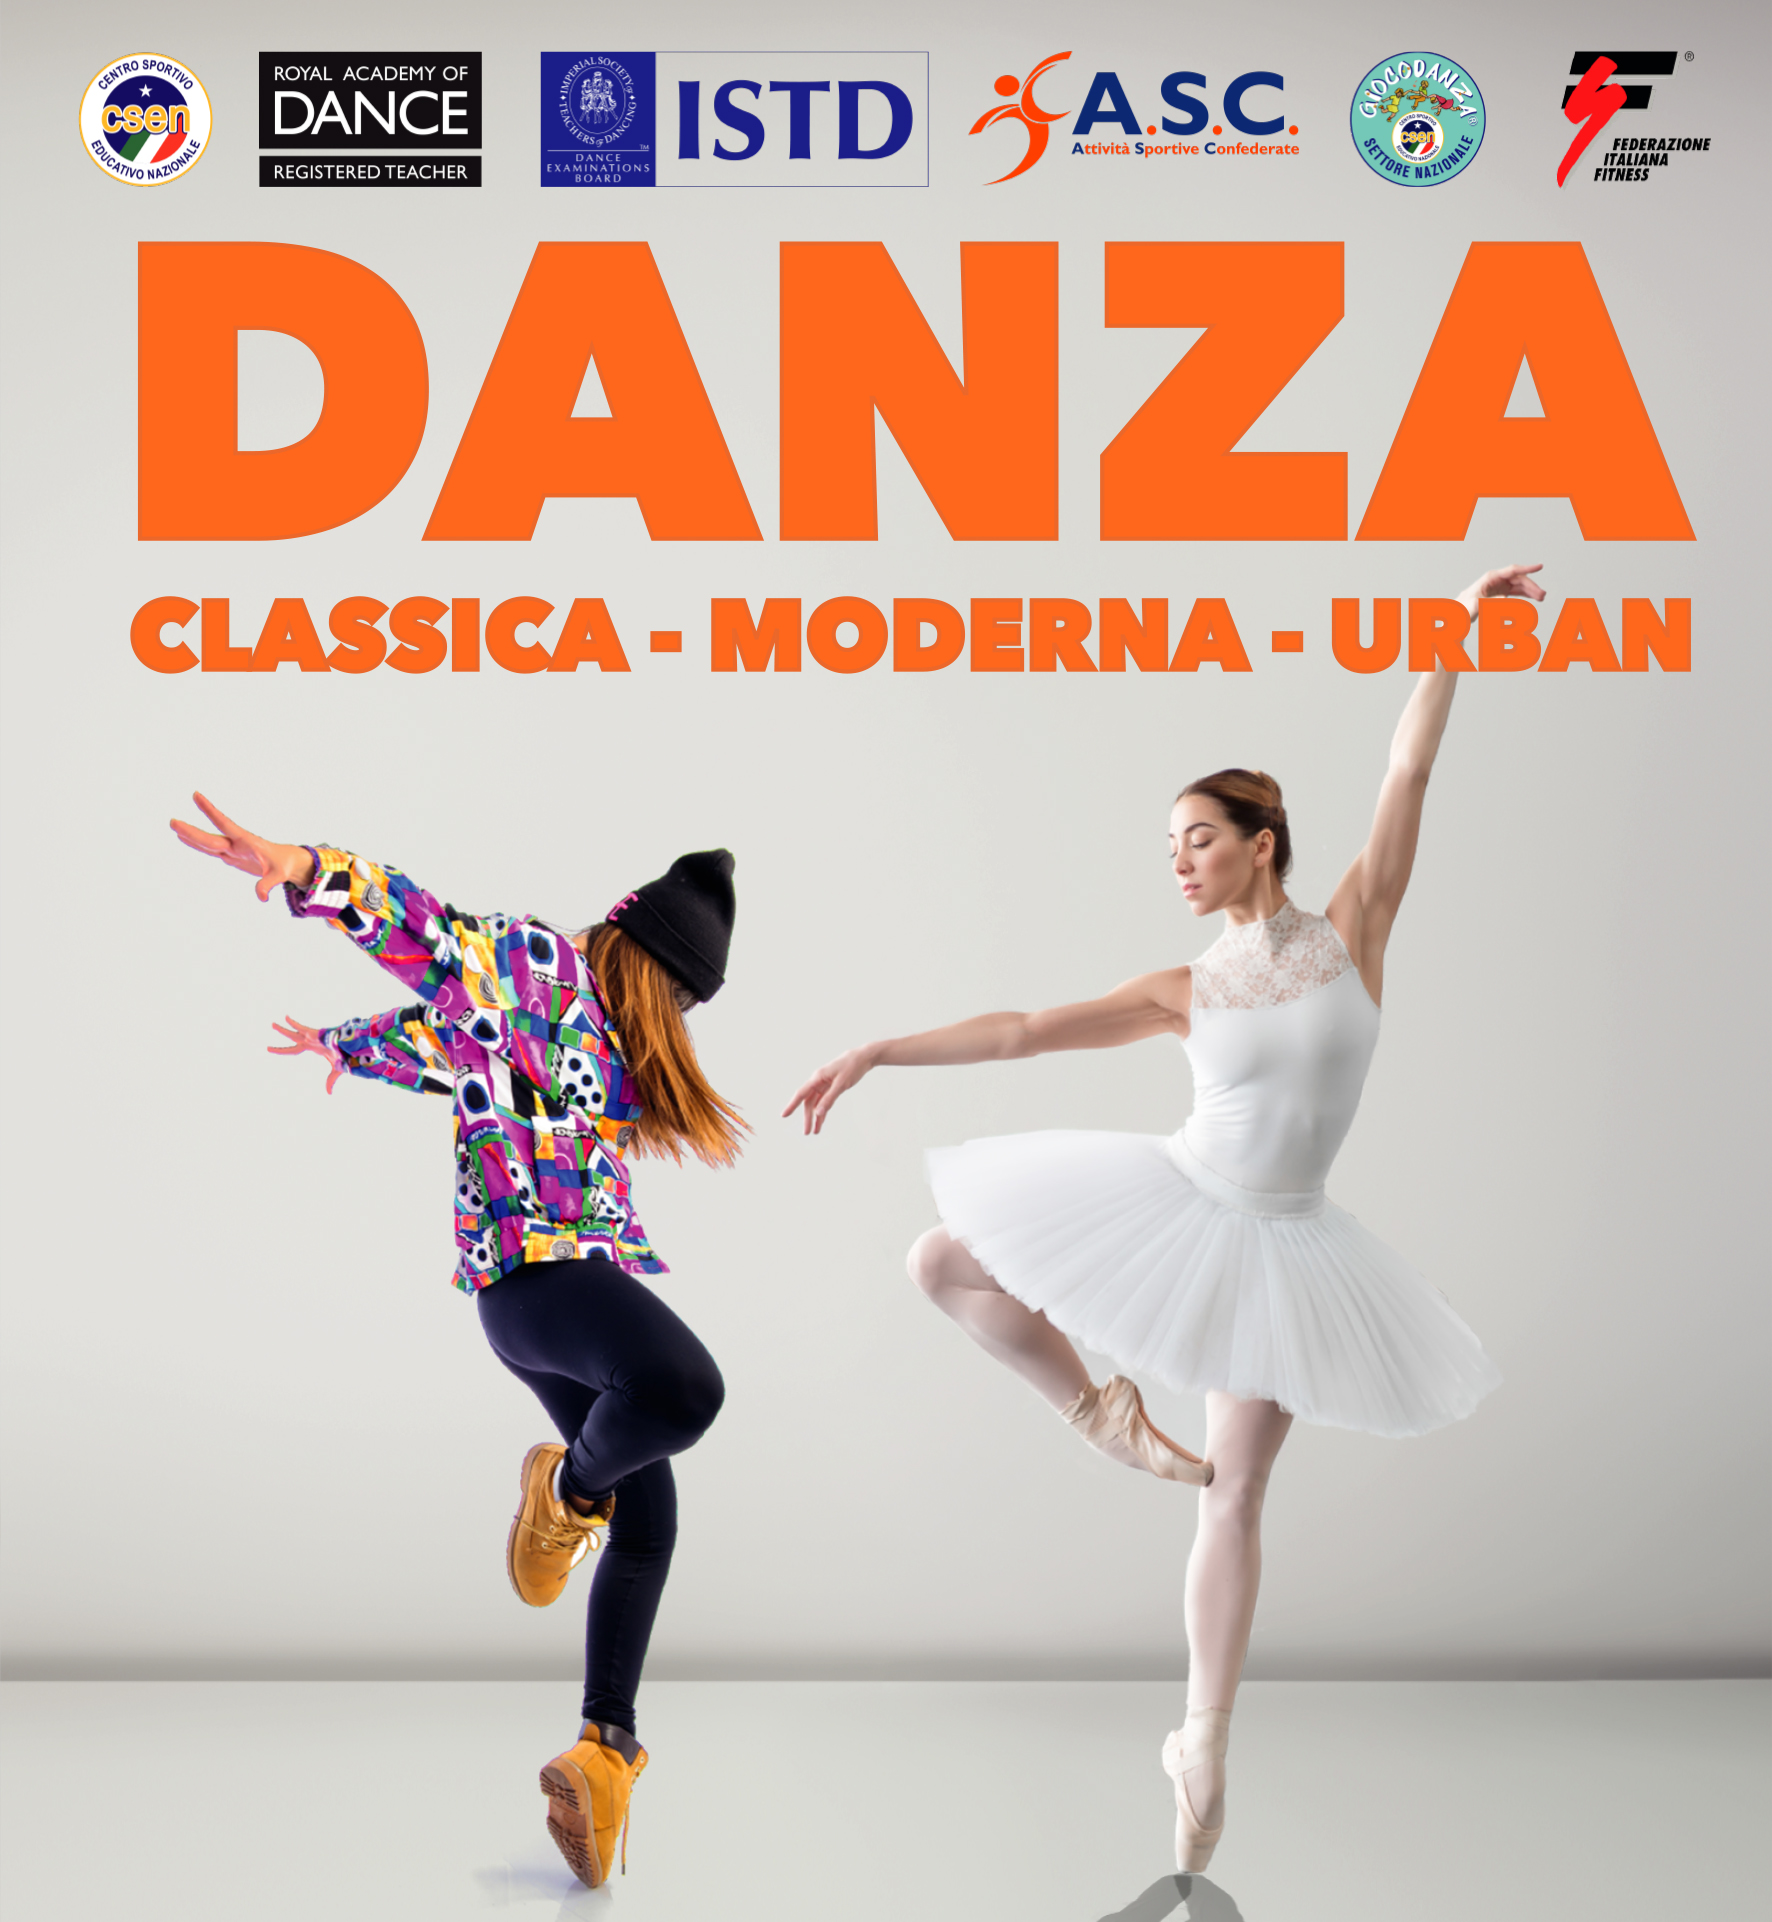 Corsi di Danza School of Art® Verona